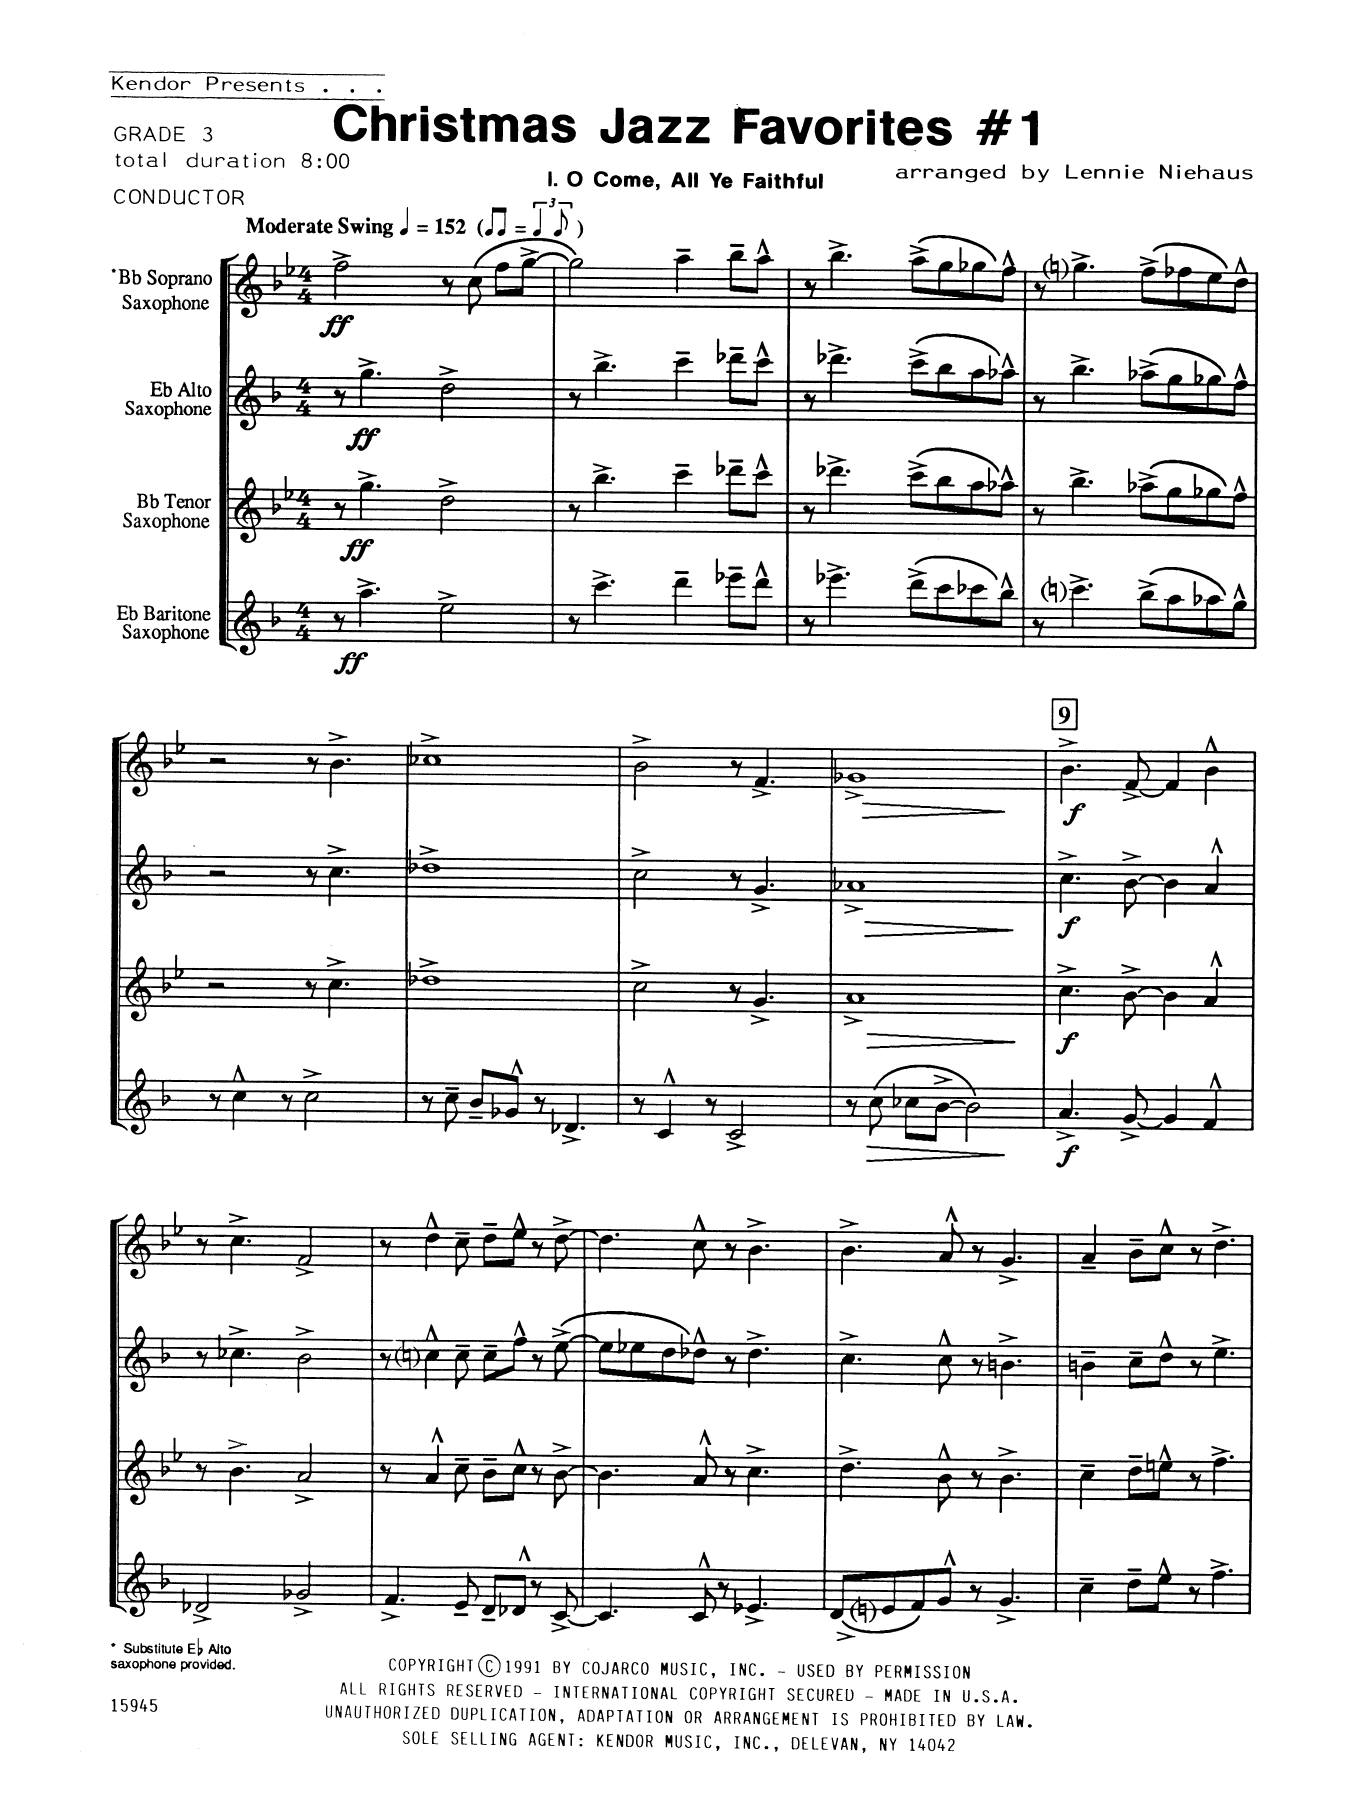 Christmas Jazz Favorites #1 (COMPLETE) sheet music for saxophone quartet by Lennie Niehaus. Score Image Preview.